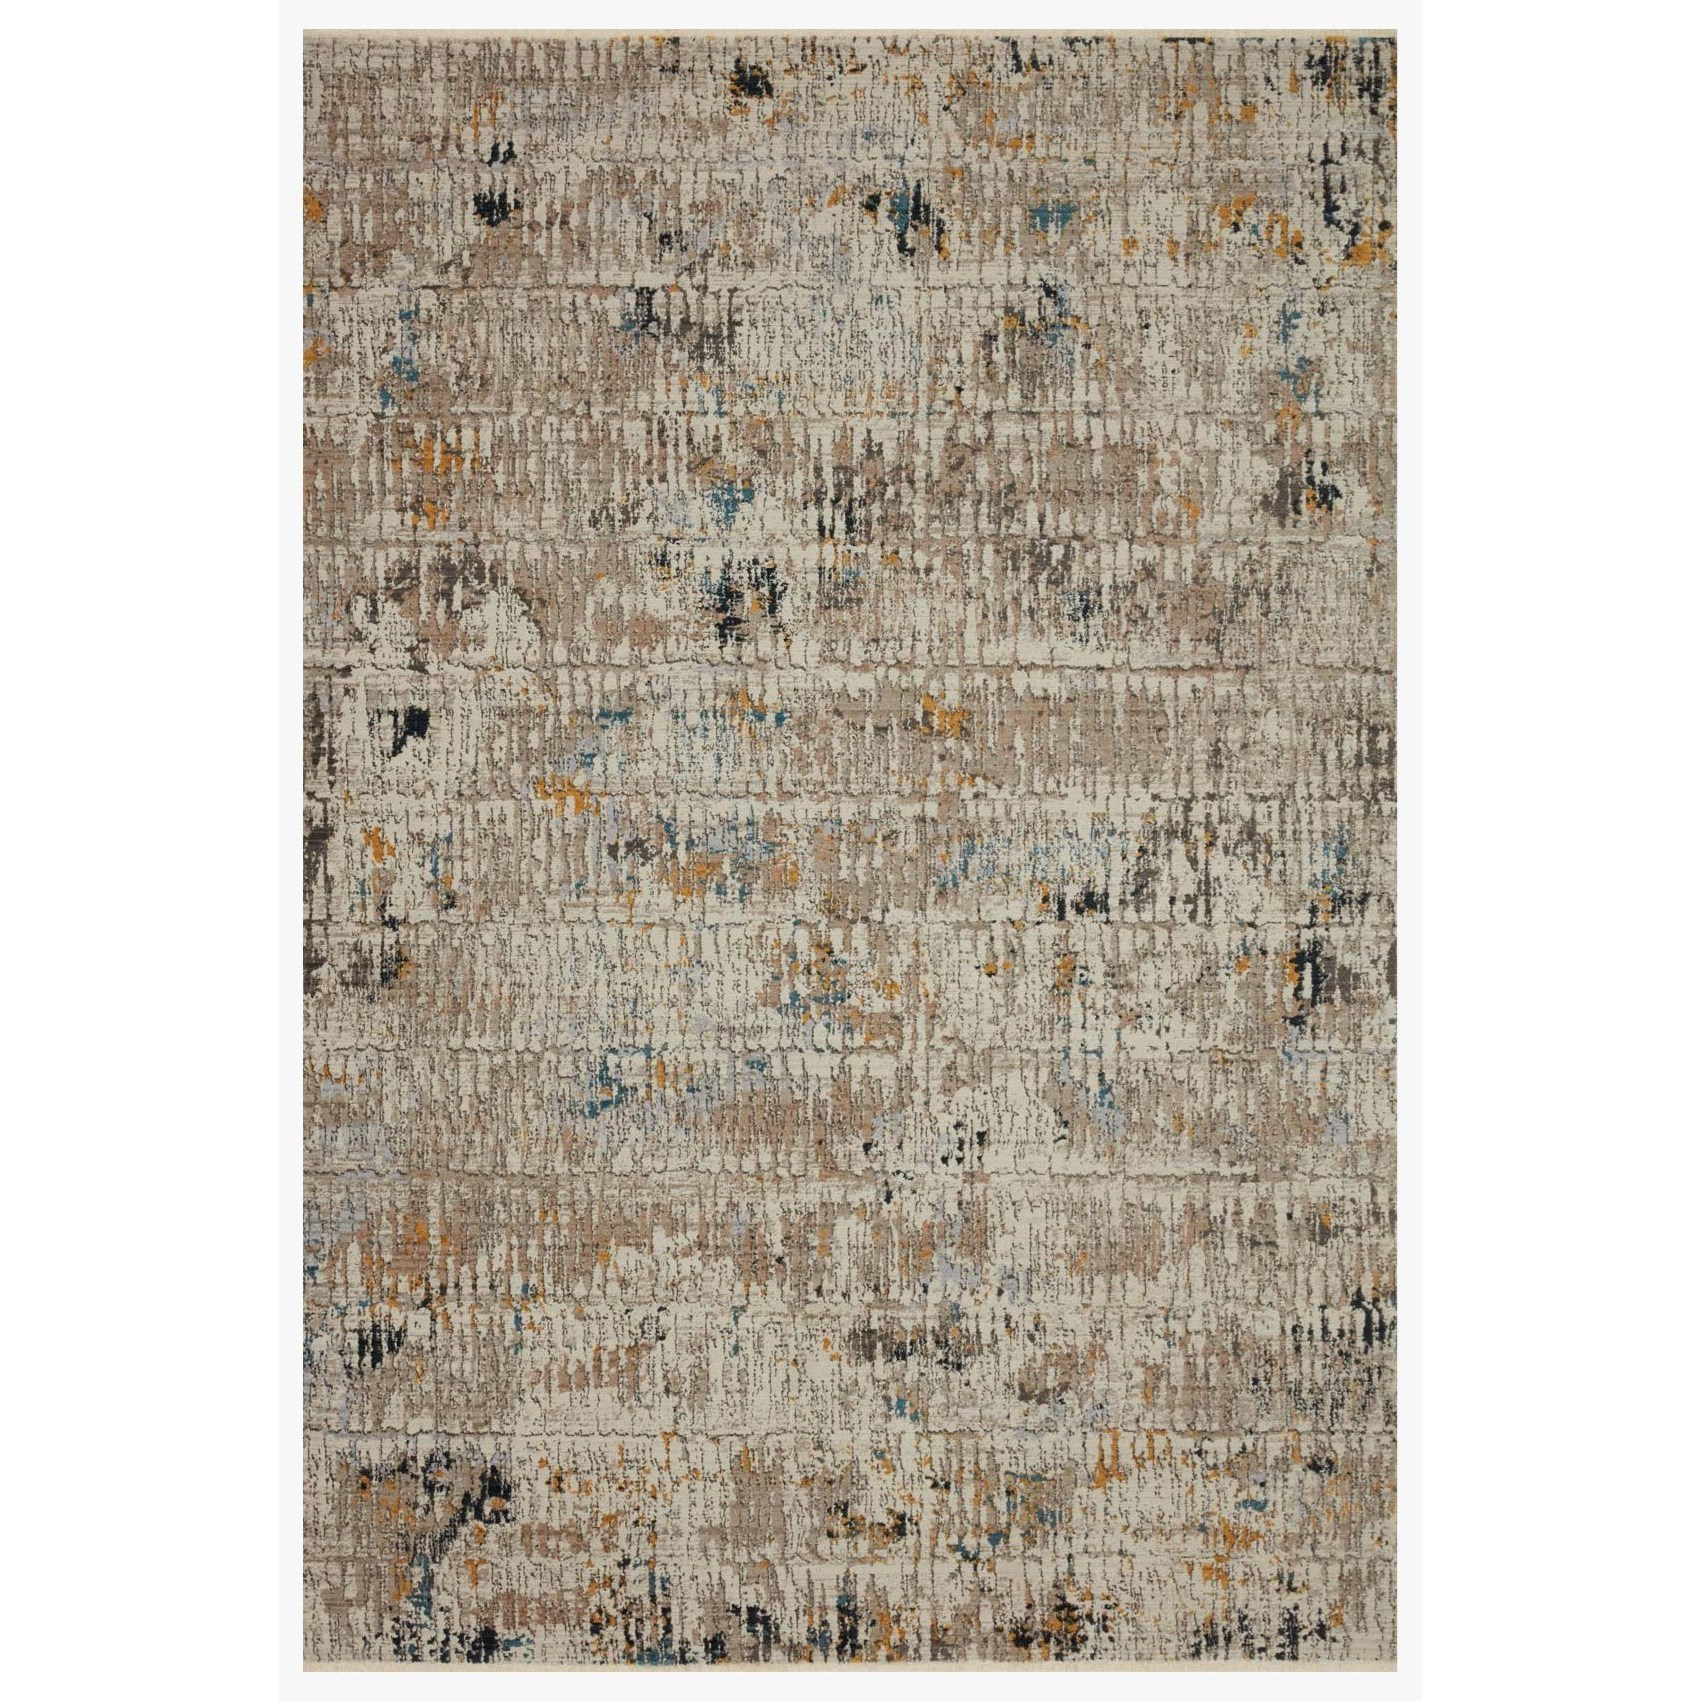 """Leigh 4'0"""" x 5'5"""" Ivory / Granite Rug by Loloi Rugs at Virginia Furniture Market"""